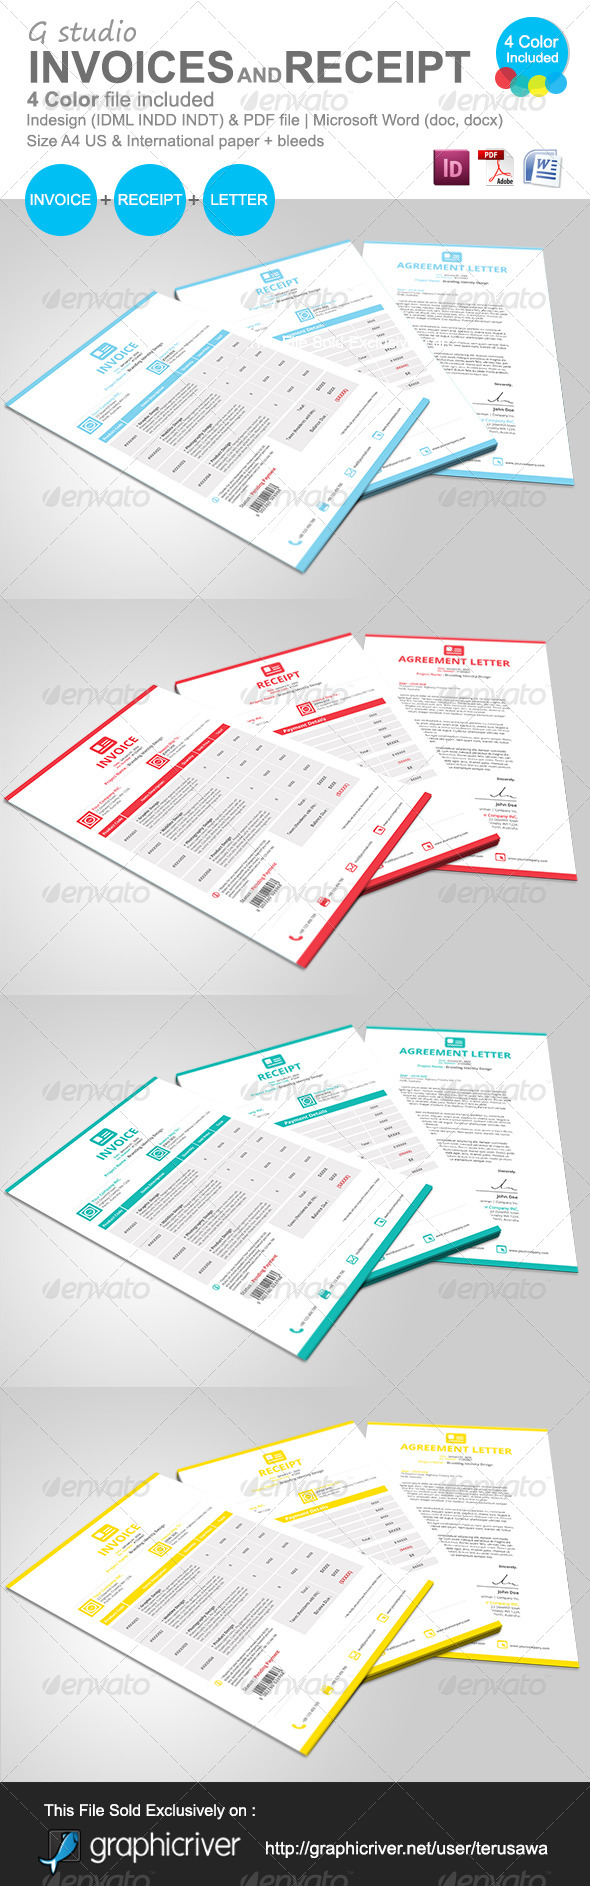 Home Depot Online Receipt Excel Gstudio Invoices And Receipt Template By Terusawa  Graphicriver Cost Of Processing An Invoice Word with Template Tax Invoice Excel Gstudio Invoices And Receipt Template  Proposals  Invoices Stationery Receipt Printing Machine Word